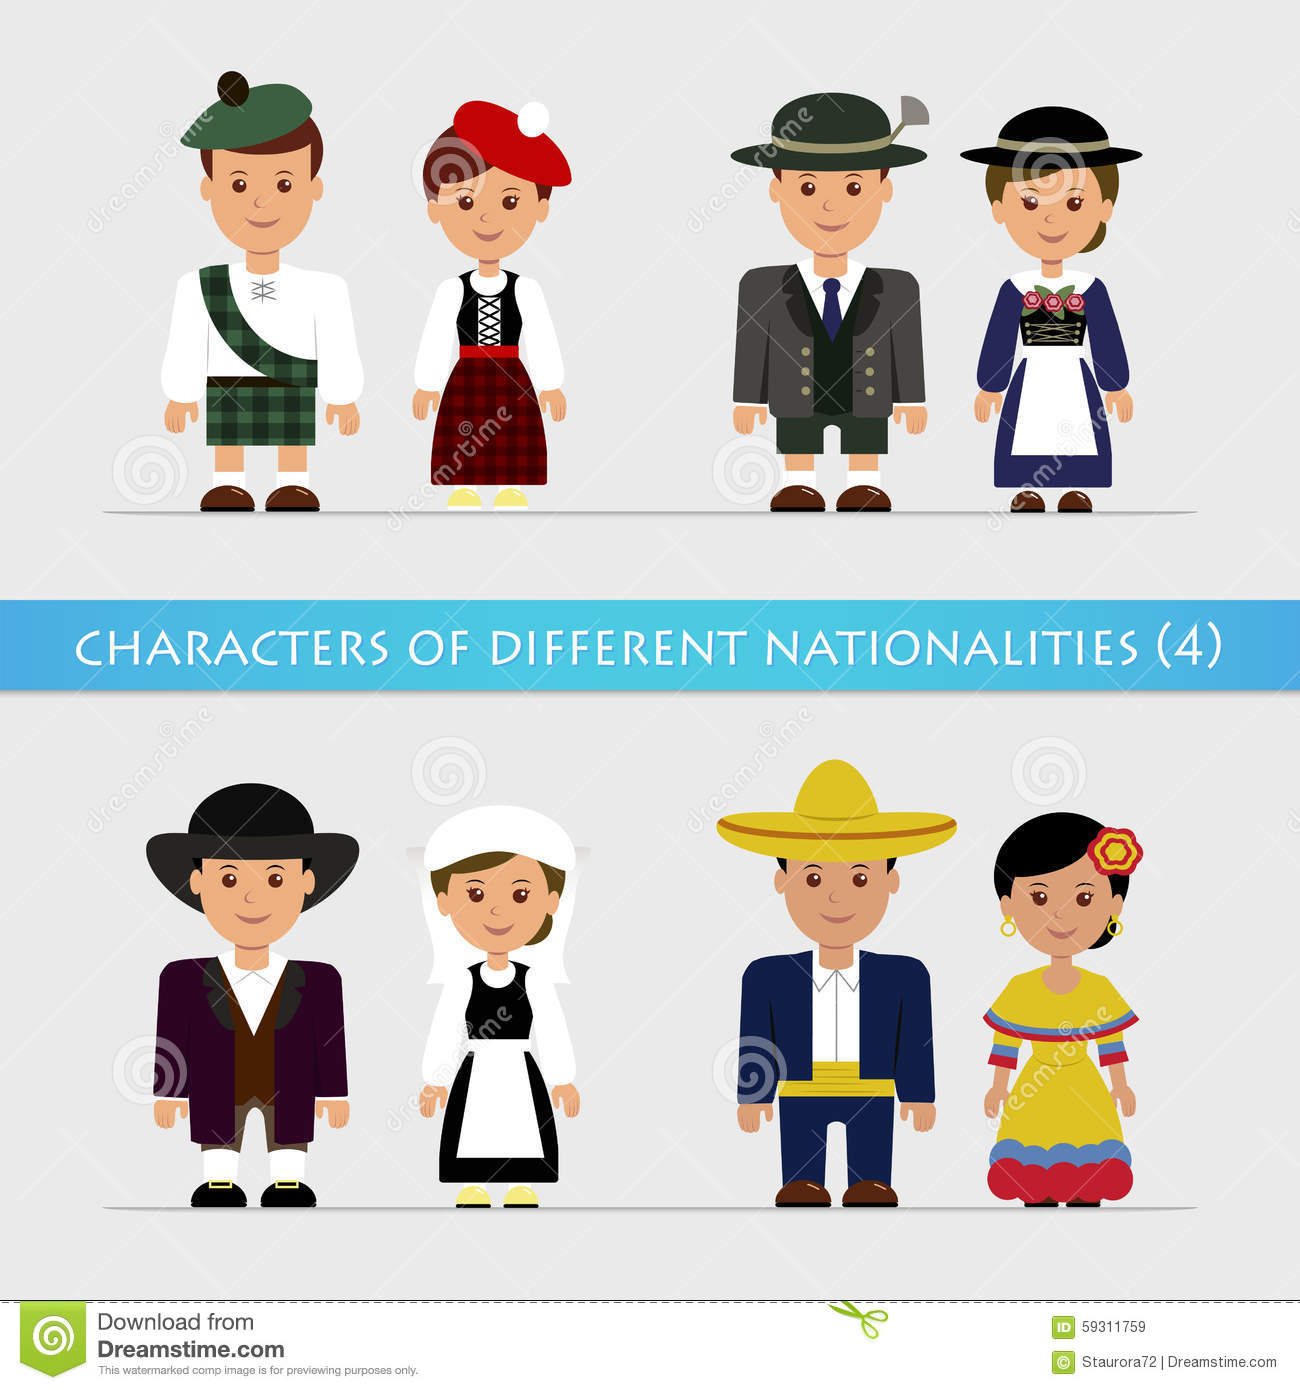 National character studies